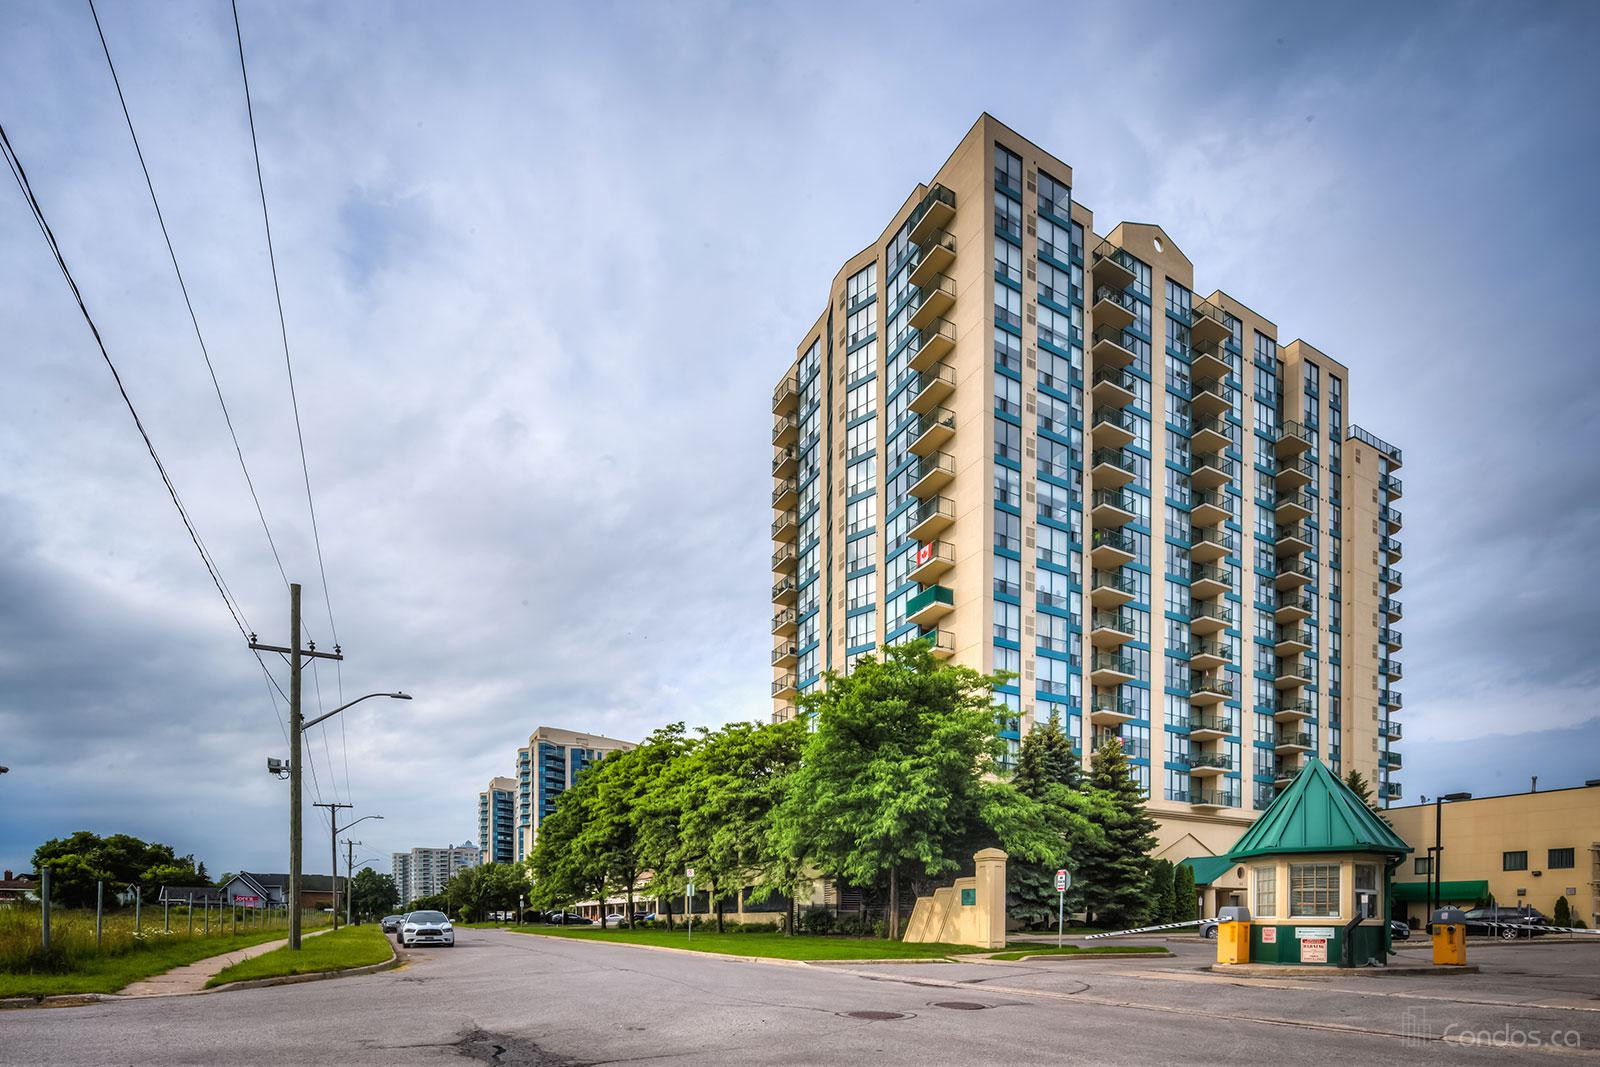 106 Saunders Condos at 106 Saunders Rd, Barrie 0